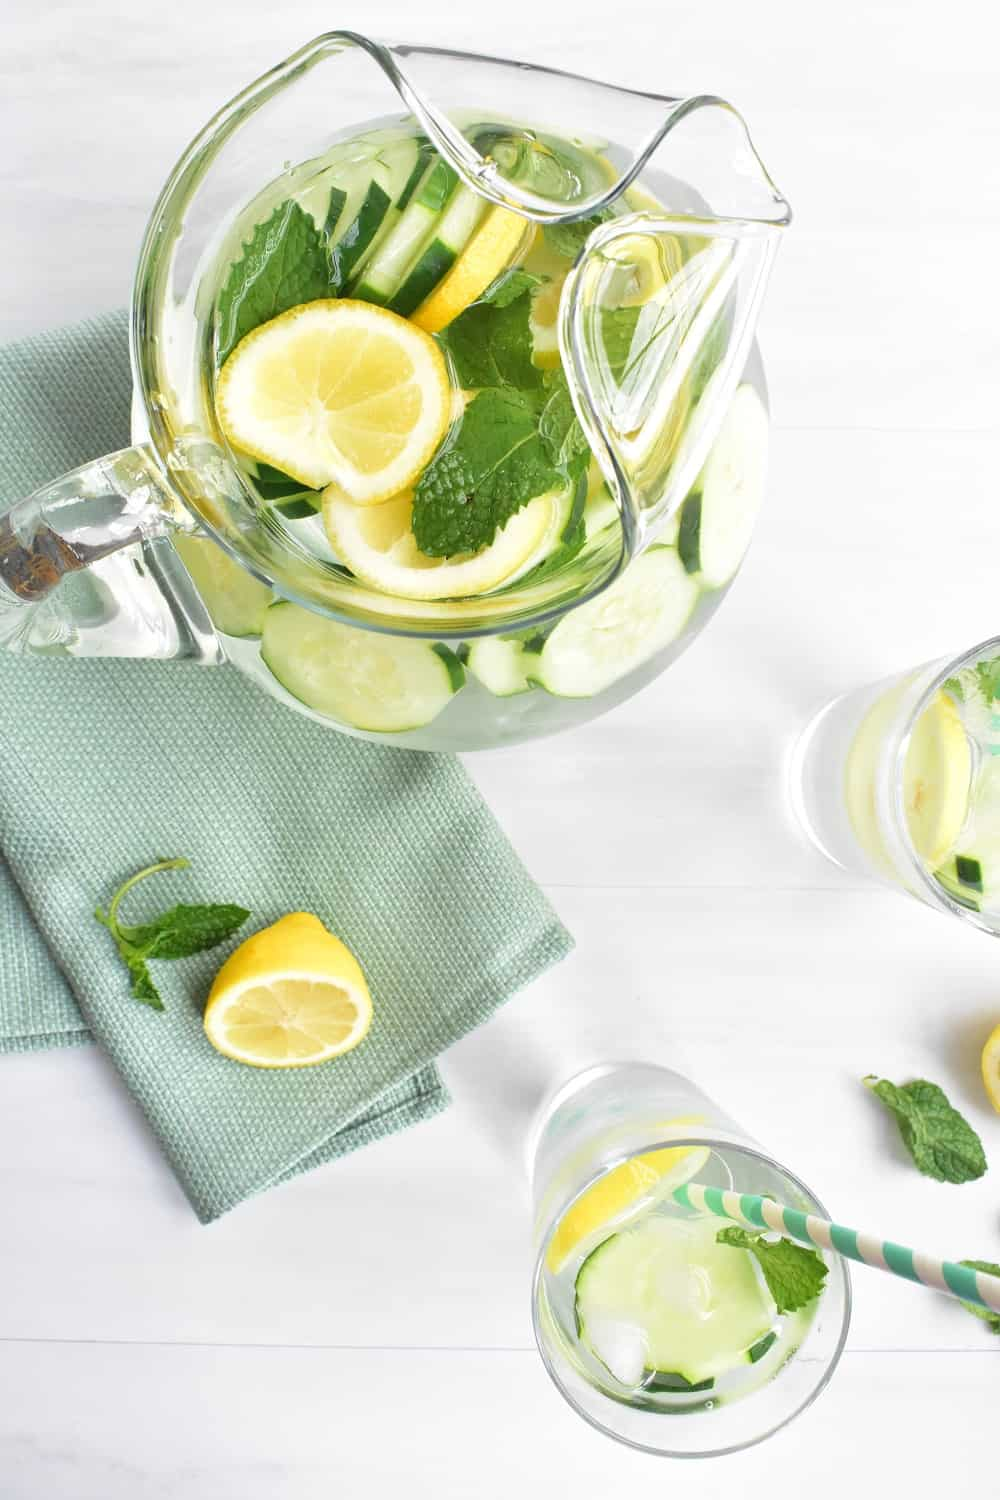 Pitcher and two glasses filled with lemon mint cucumber water